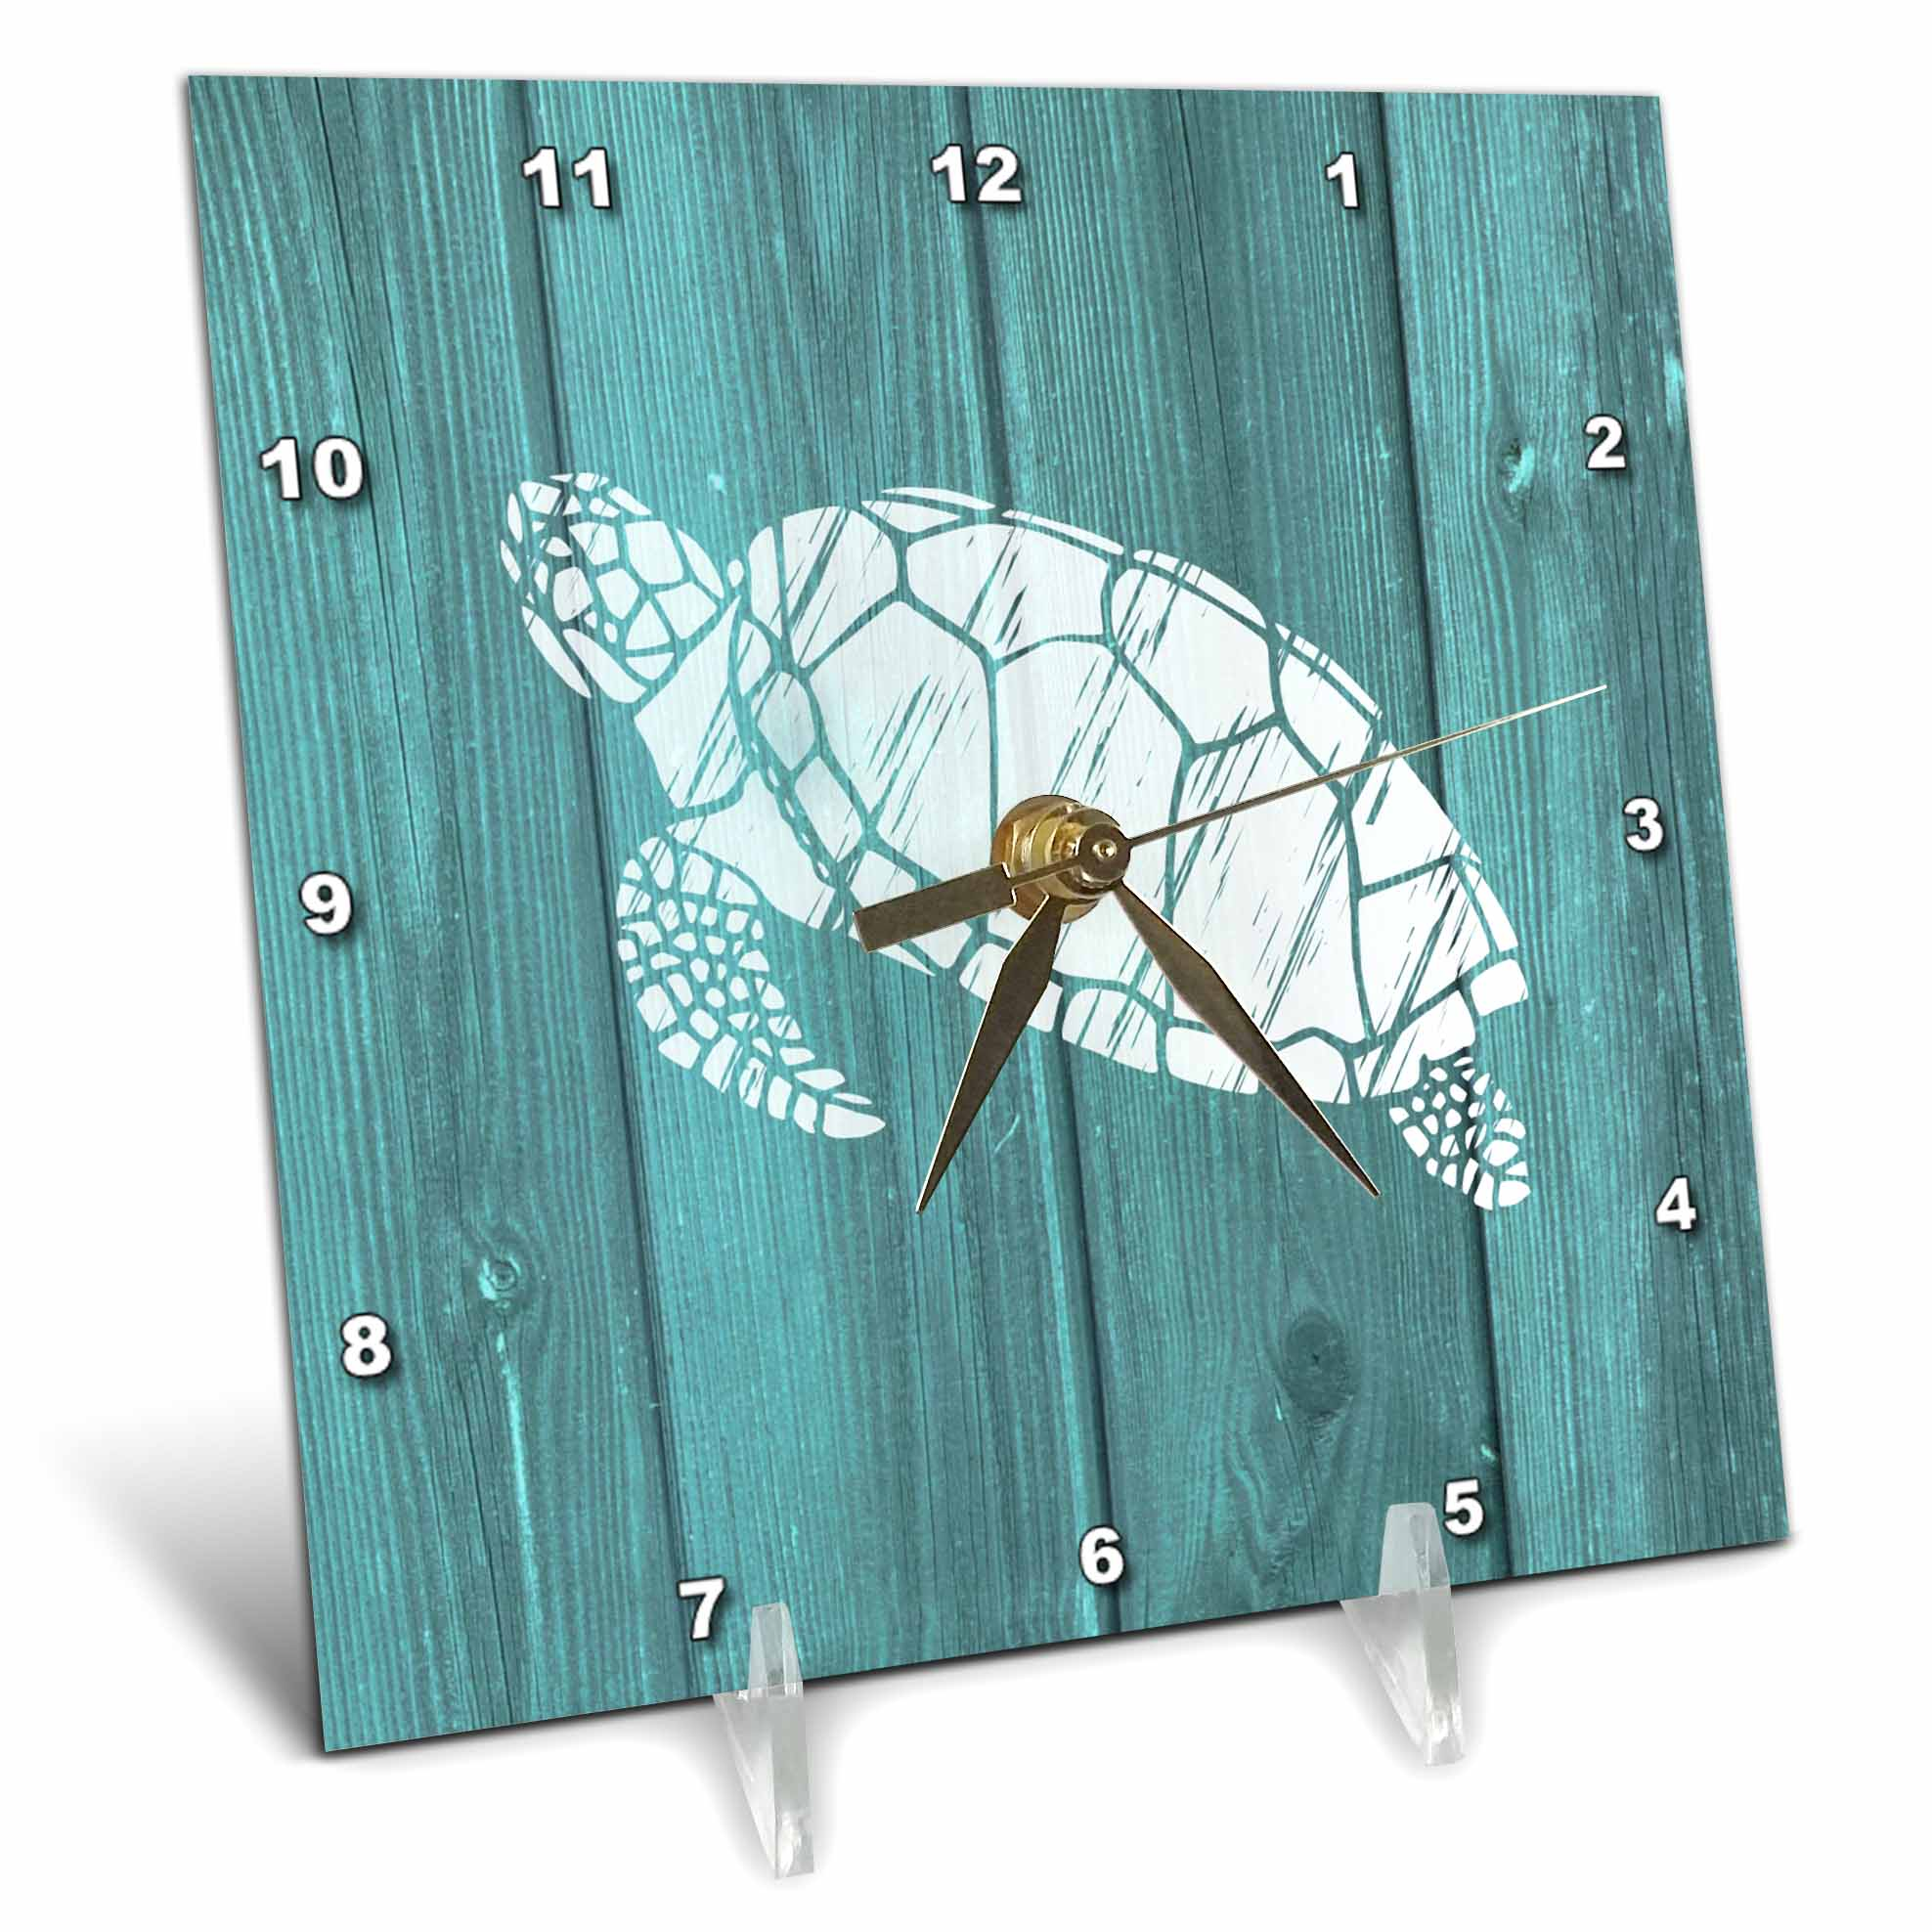 3dRose Turtle Stencil in White over Teal Weatherboard- not real wood, Desk Clock, 6 by 6-inch by 3dRose